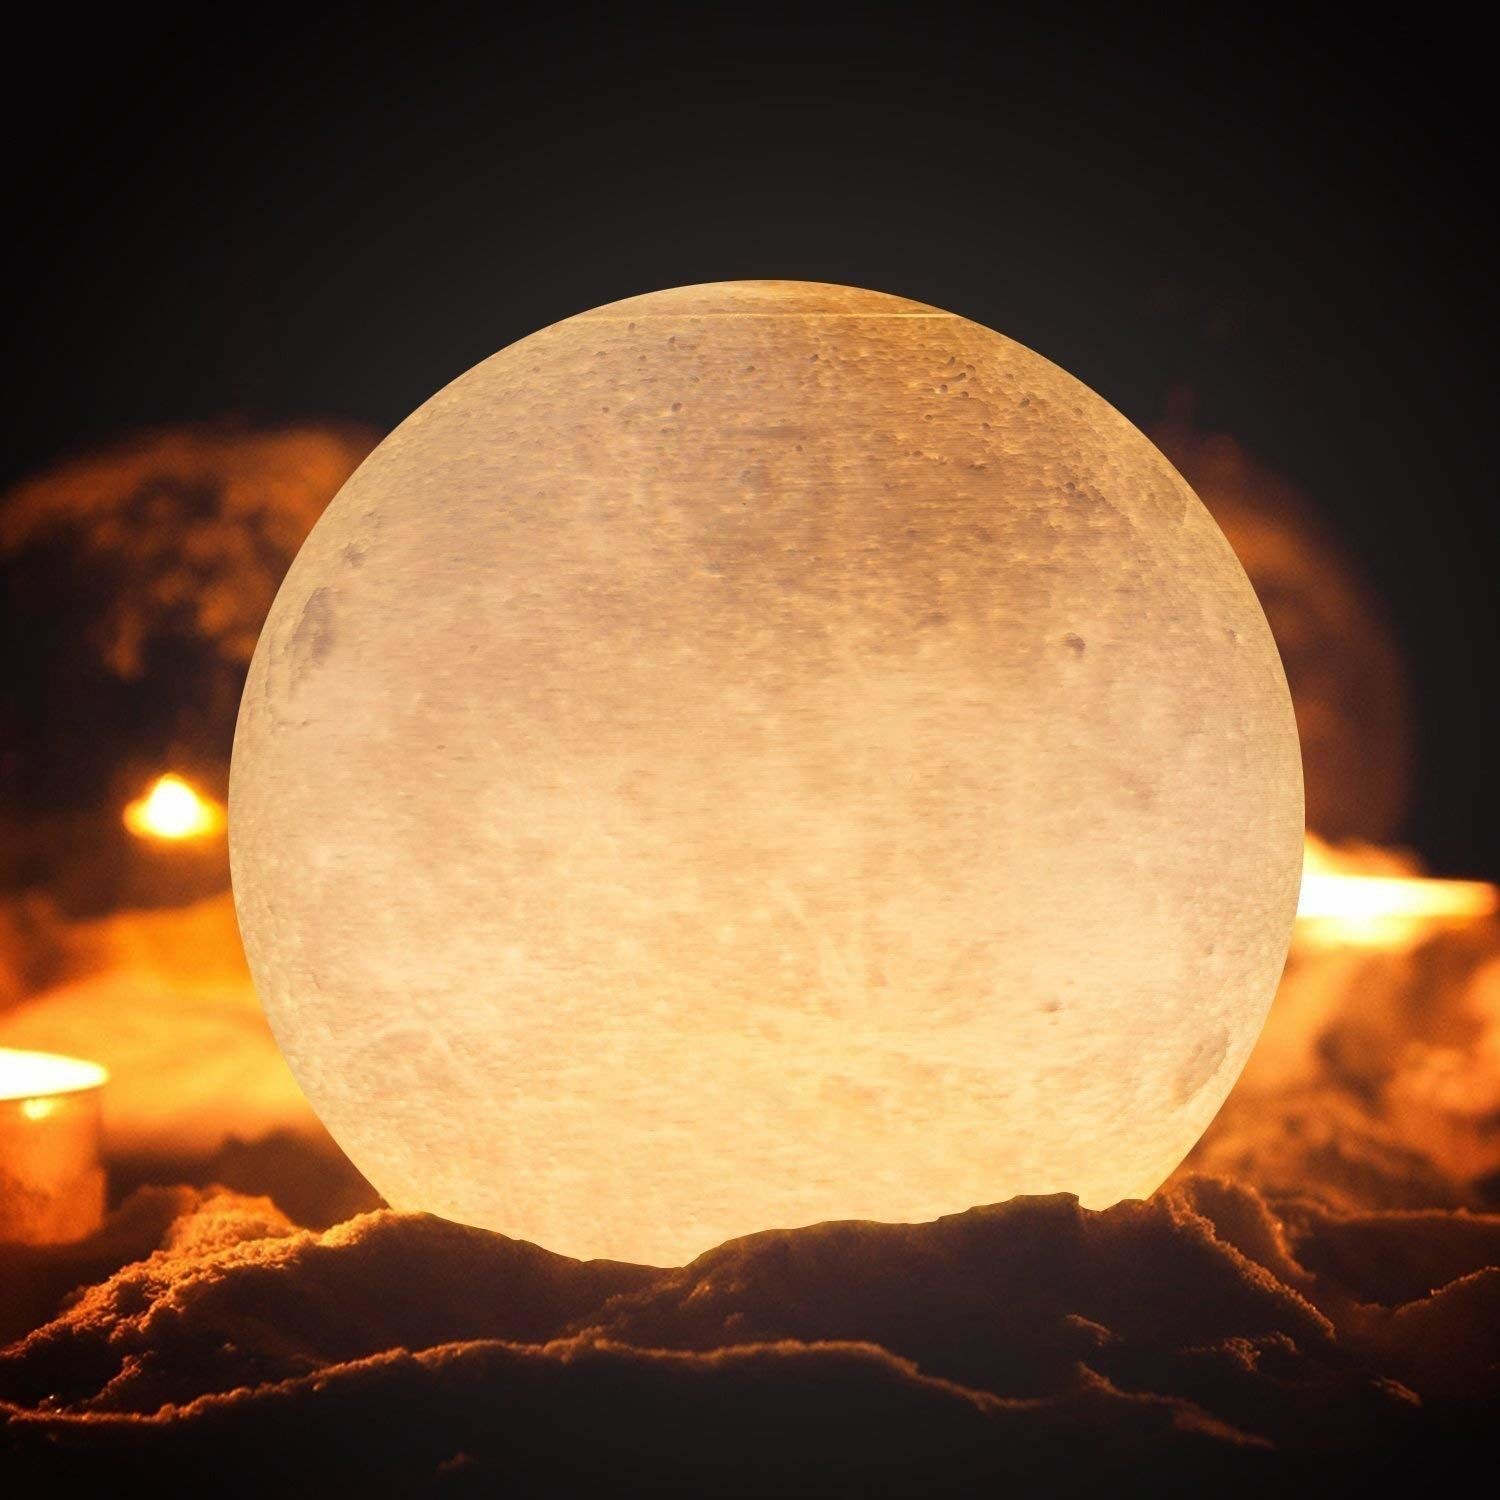 A moon shaped lamp with some sand and some candles